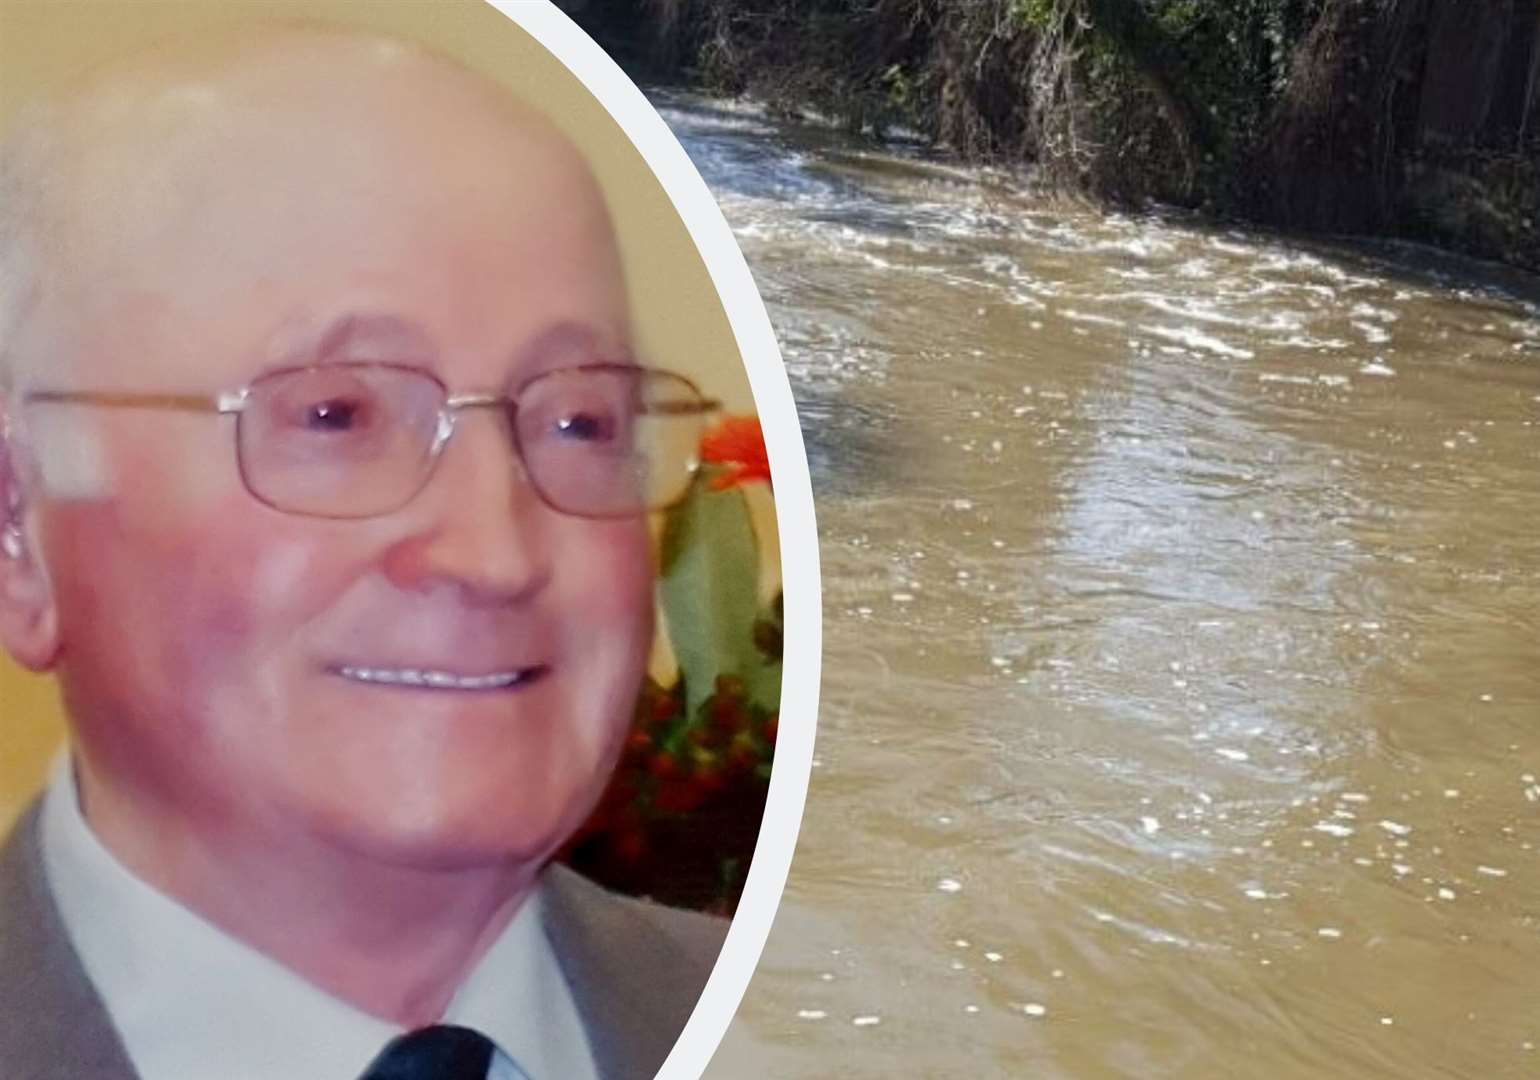 Grandad, 89, saved in 'miracle' river rescue